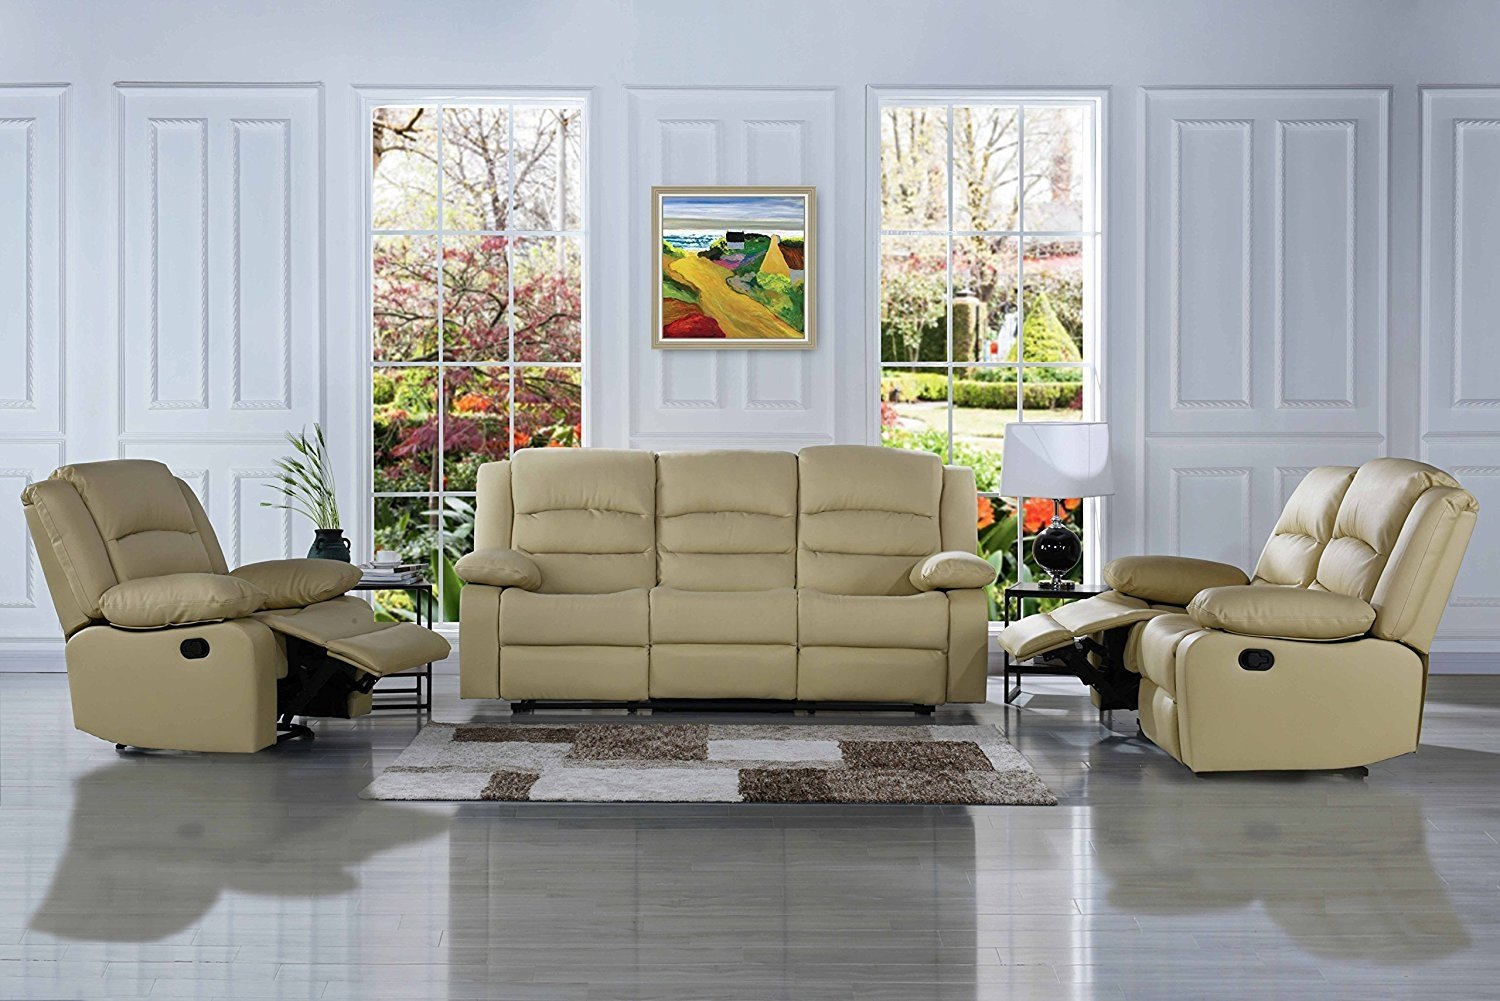 Details About Classic 3 Pc Reclining Sofa Set Real Grain Leather Double Recliner Beige